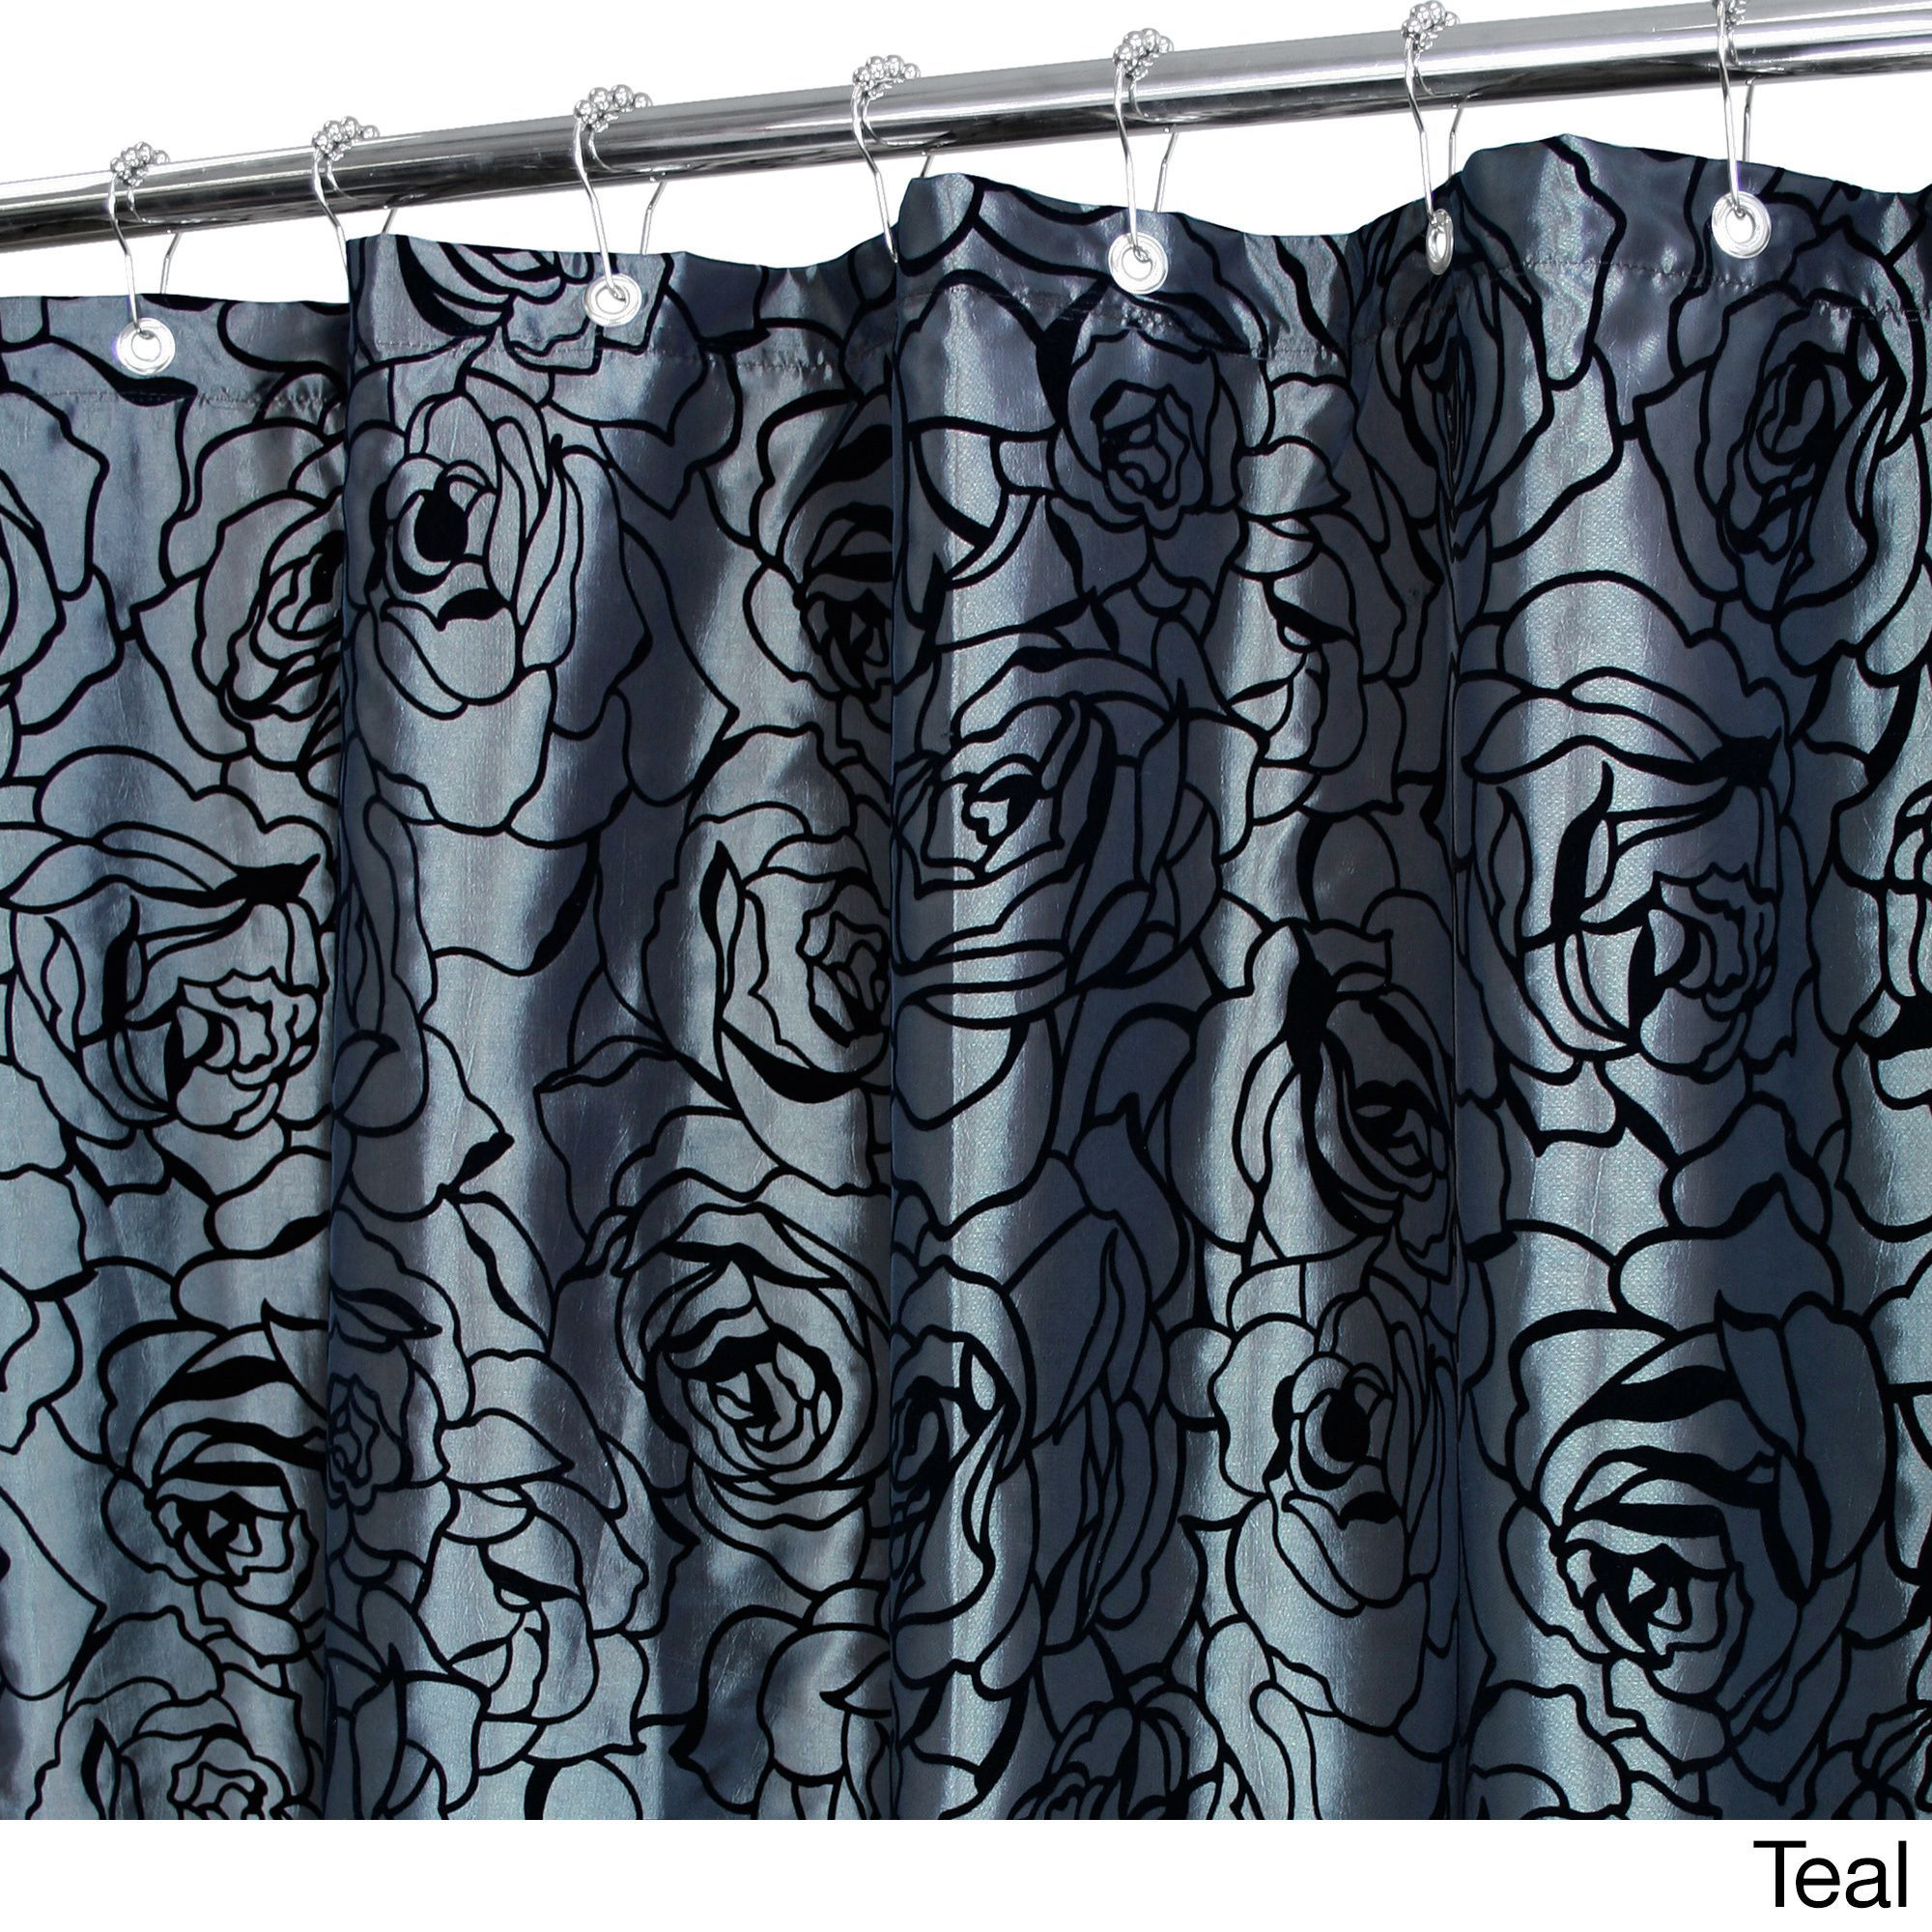 Park b smith cabbage rose luxury watershed shower curtain